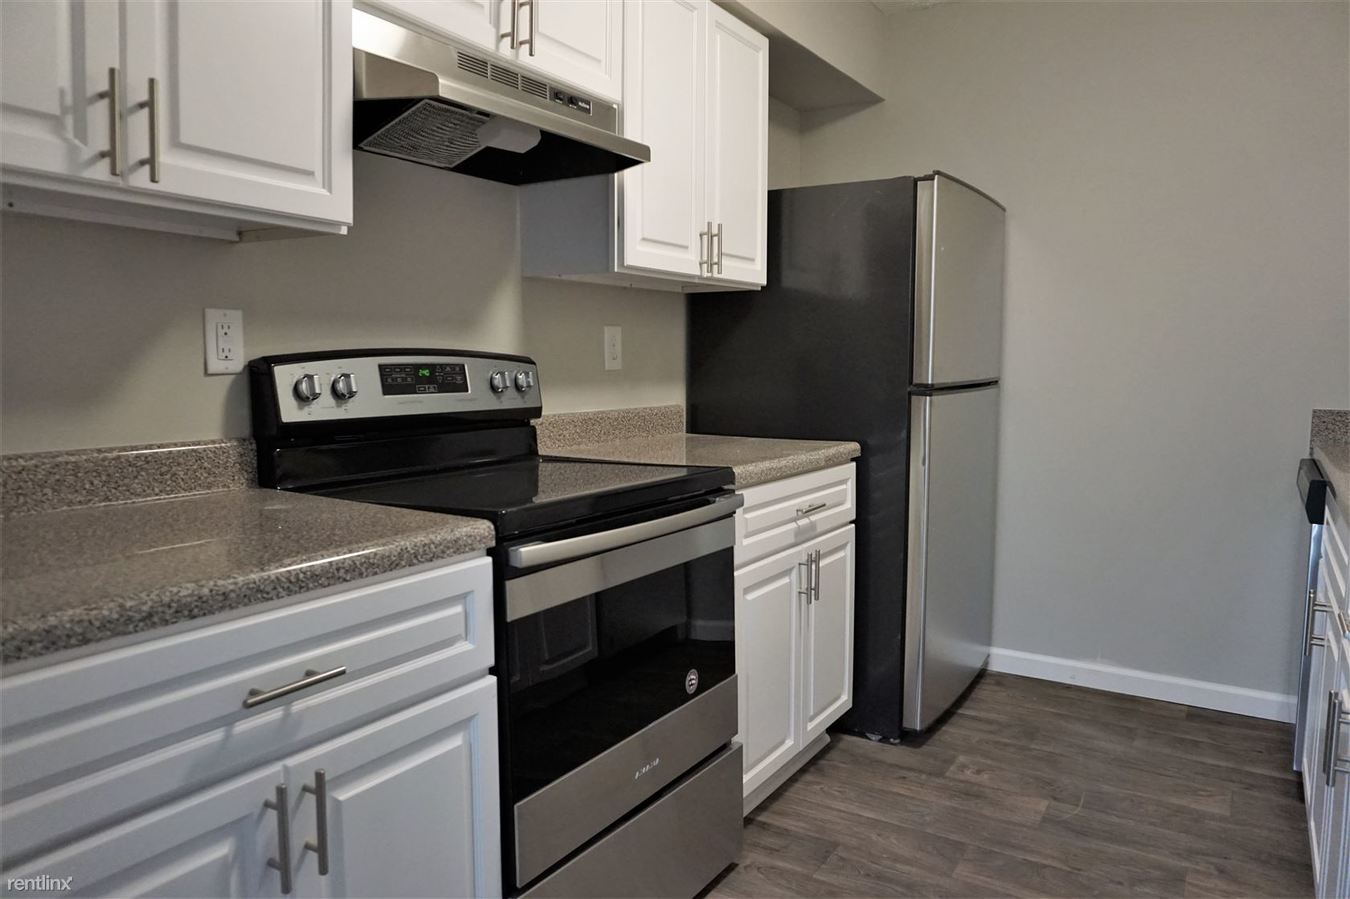 2 Bedrooms 2 Bathrooms Apartment for rent at Silver Oak Apartments in Clarkston, GA